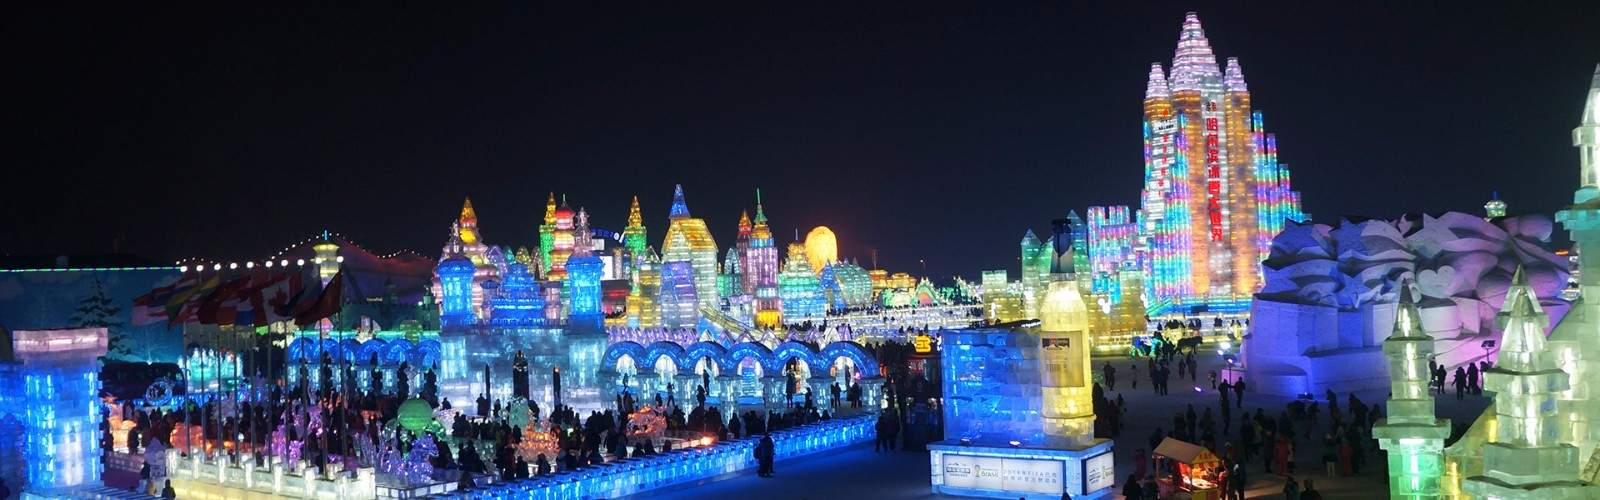 Harbin Ice Festival Extension Tour | Wendy Wu Tours